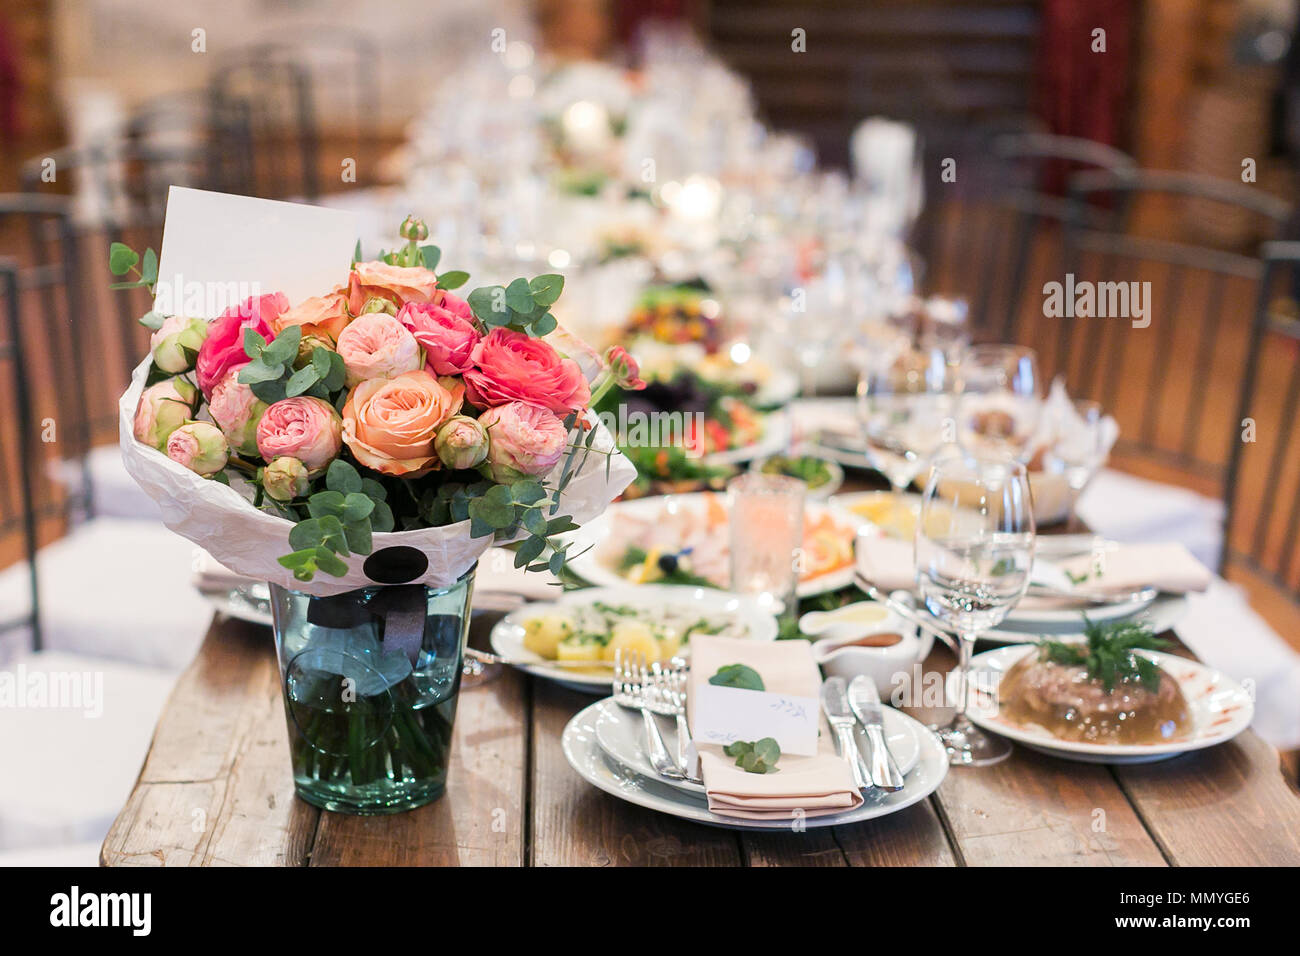 food, nature, decor concept. there is a still nature composed of marvelous bouquet of roses and peonies and amount of dishes with different treats suc Stock Photo